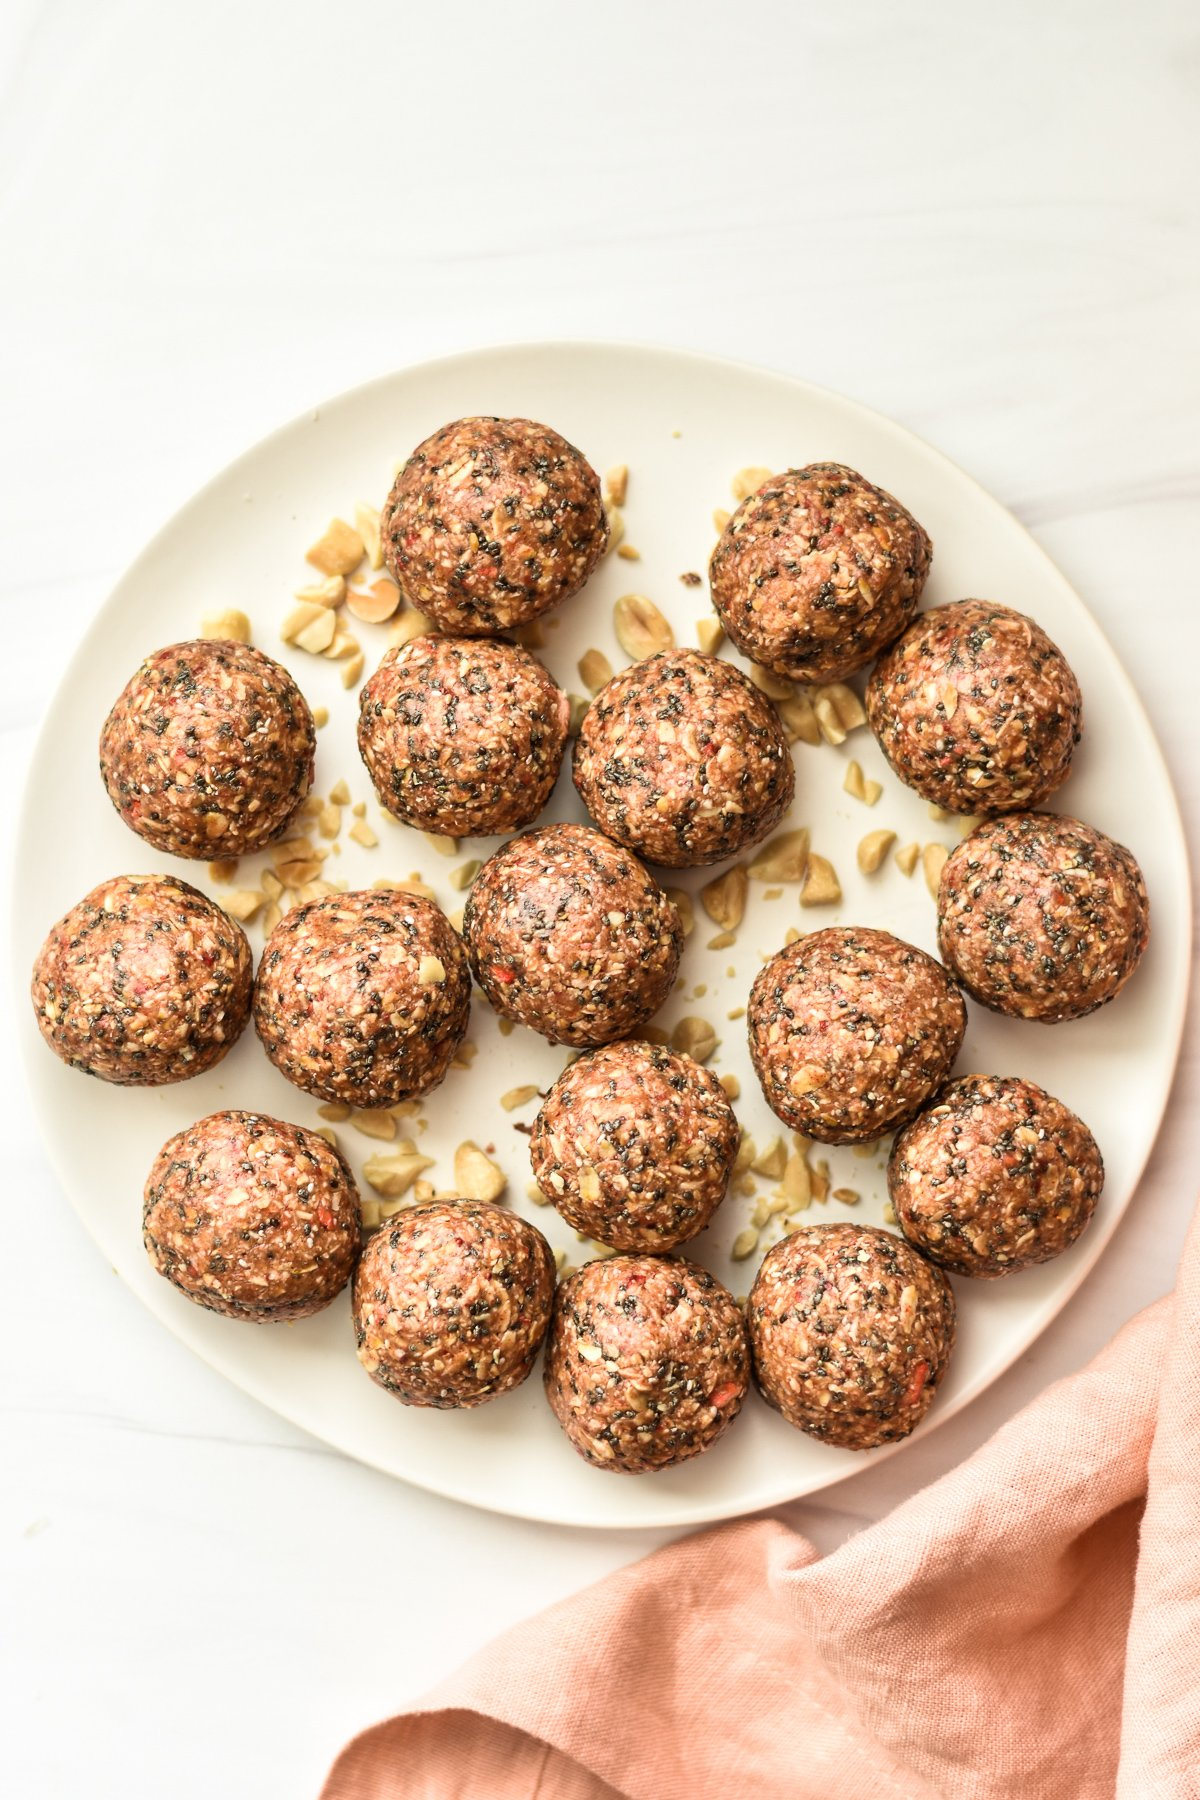 peanut butter and jelly oatmeal energy bites on a plate